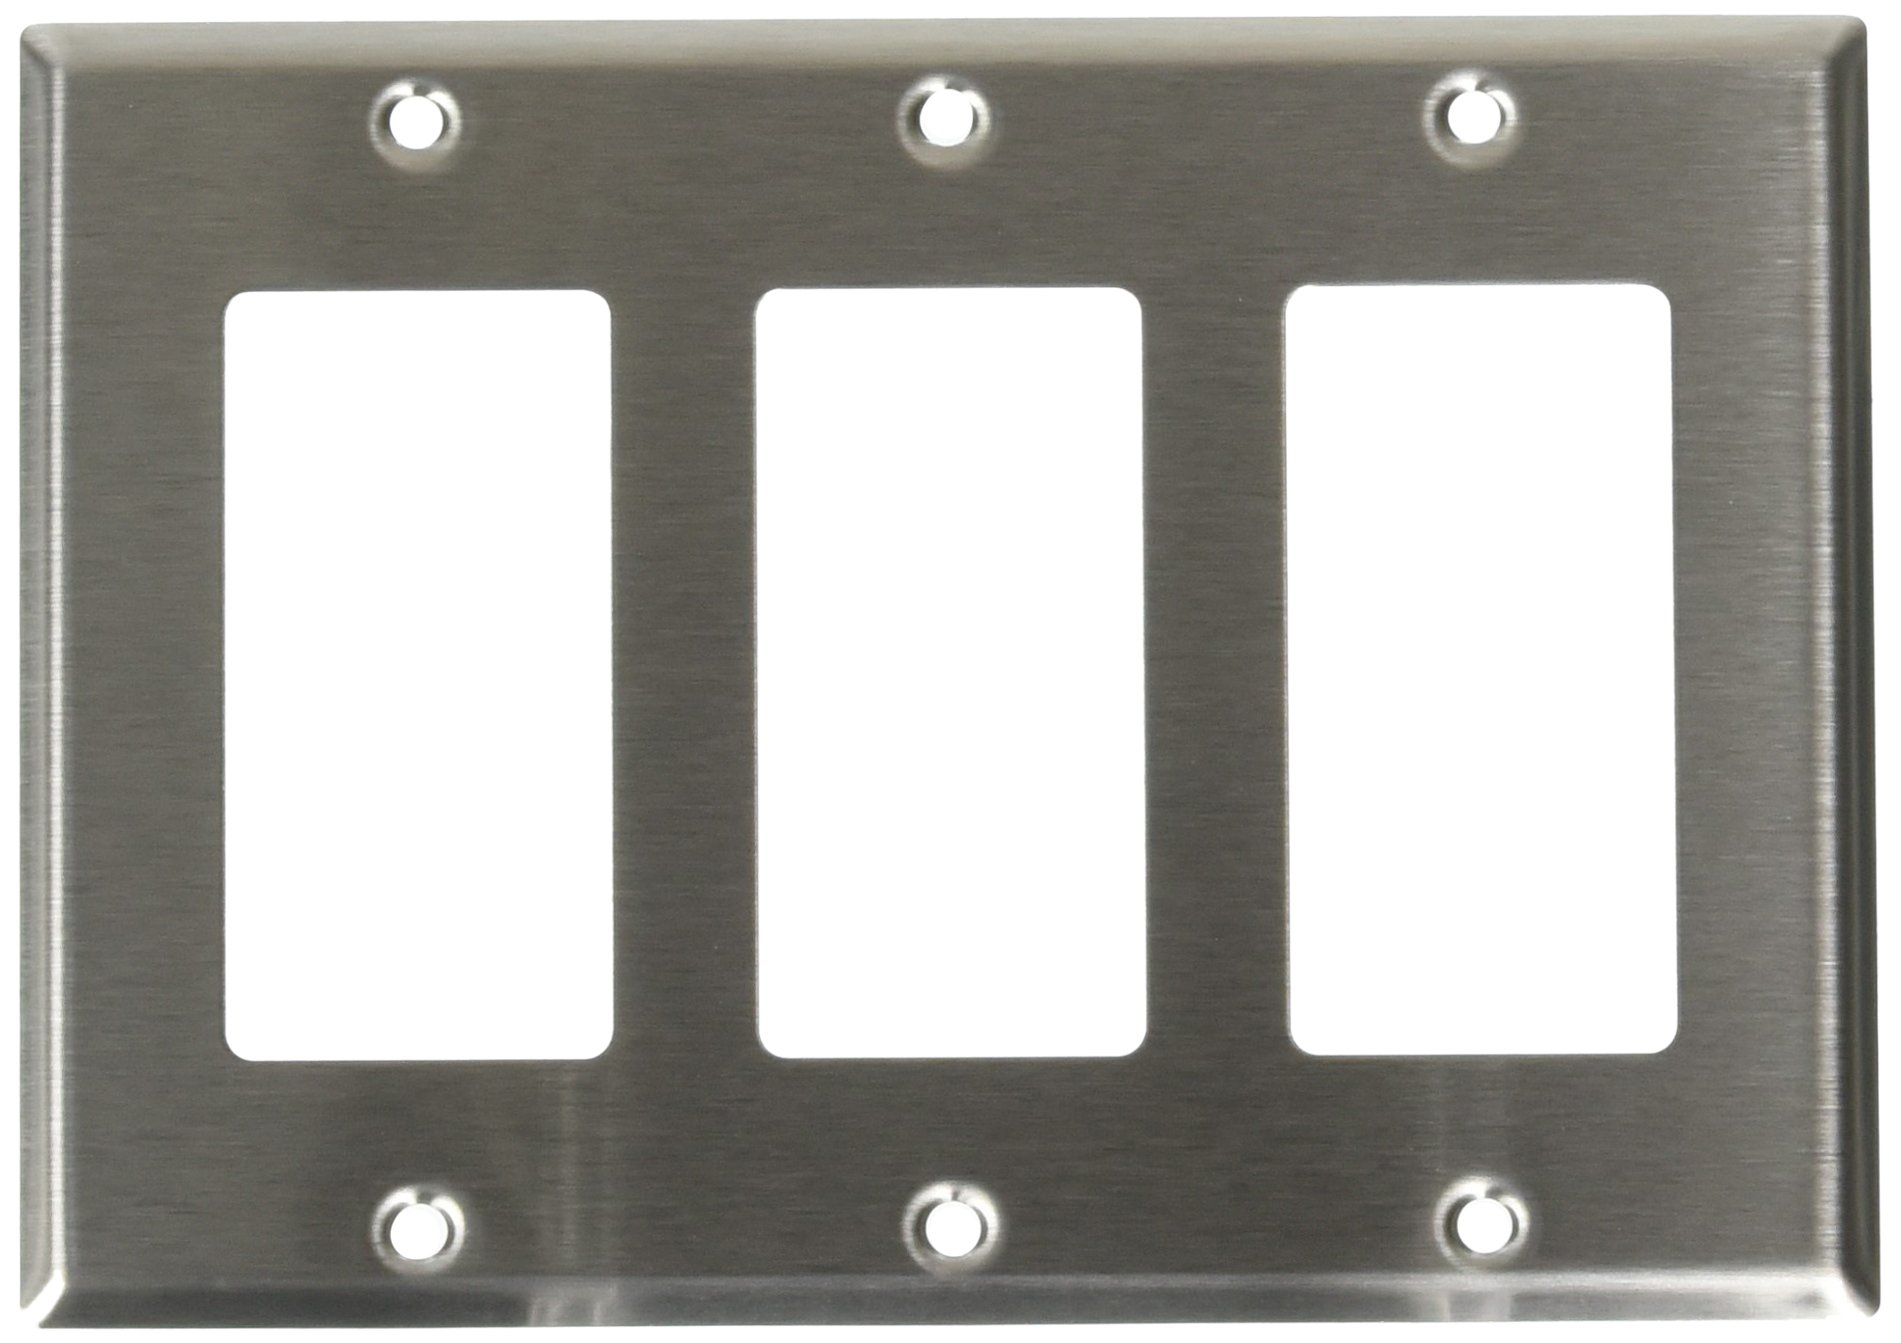 Leviton 84411-40 3-Gang Decora/GFCI Device Decora Wallplate, Device Mount, Stainless Steel, 10-Pack